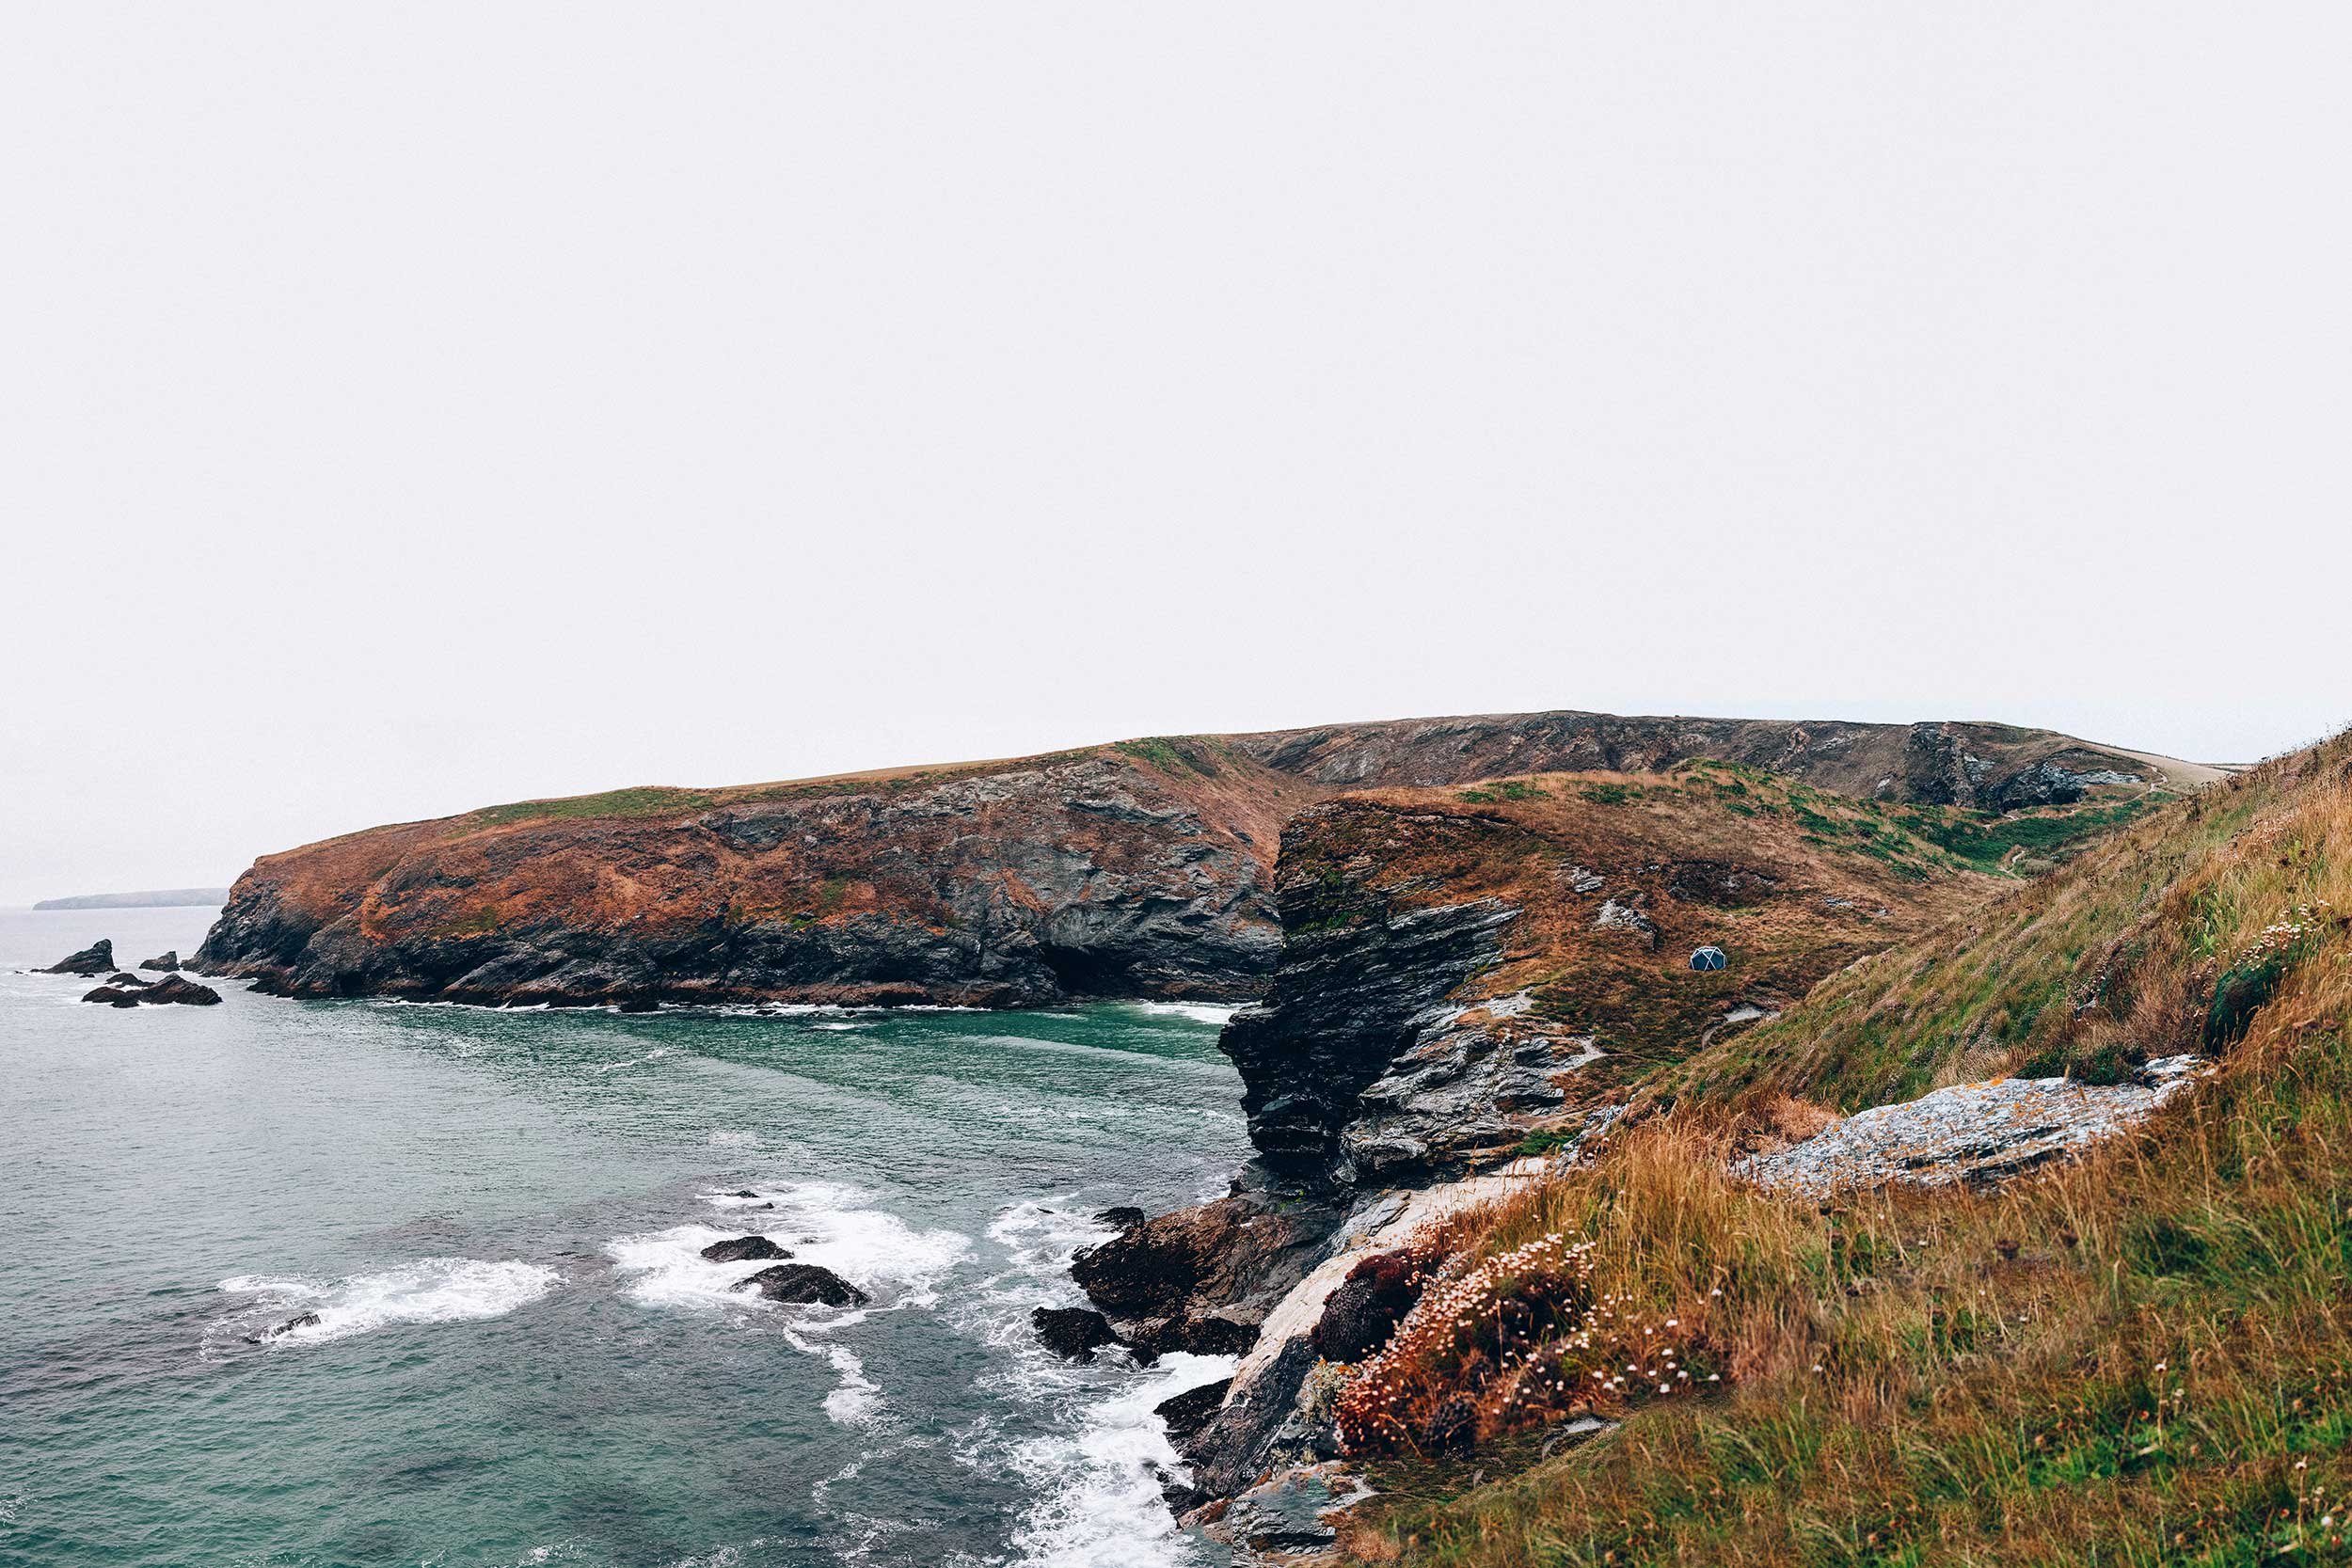 Solo+Camping+in+Cornwall+_+With+Heimplanet+_+Karl+Mackie+Photography (6).jpeg